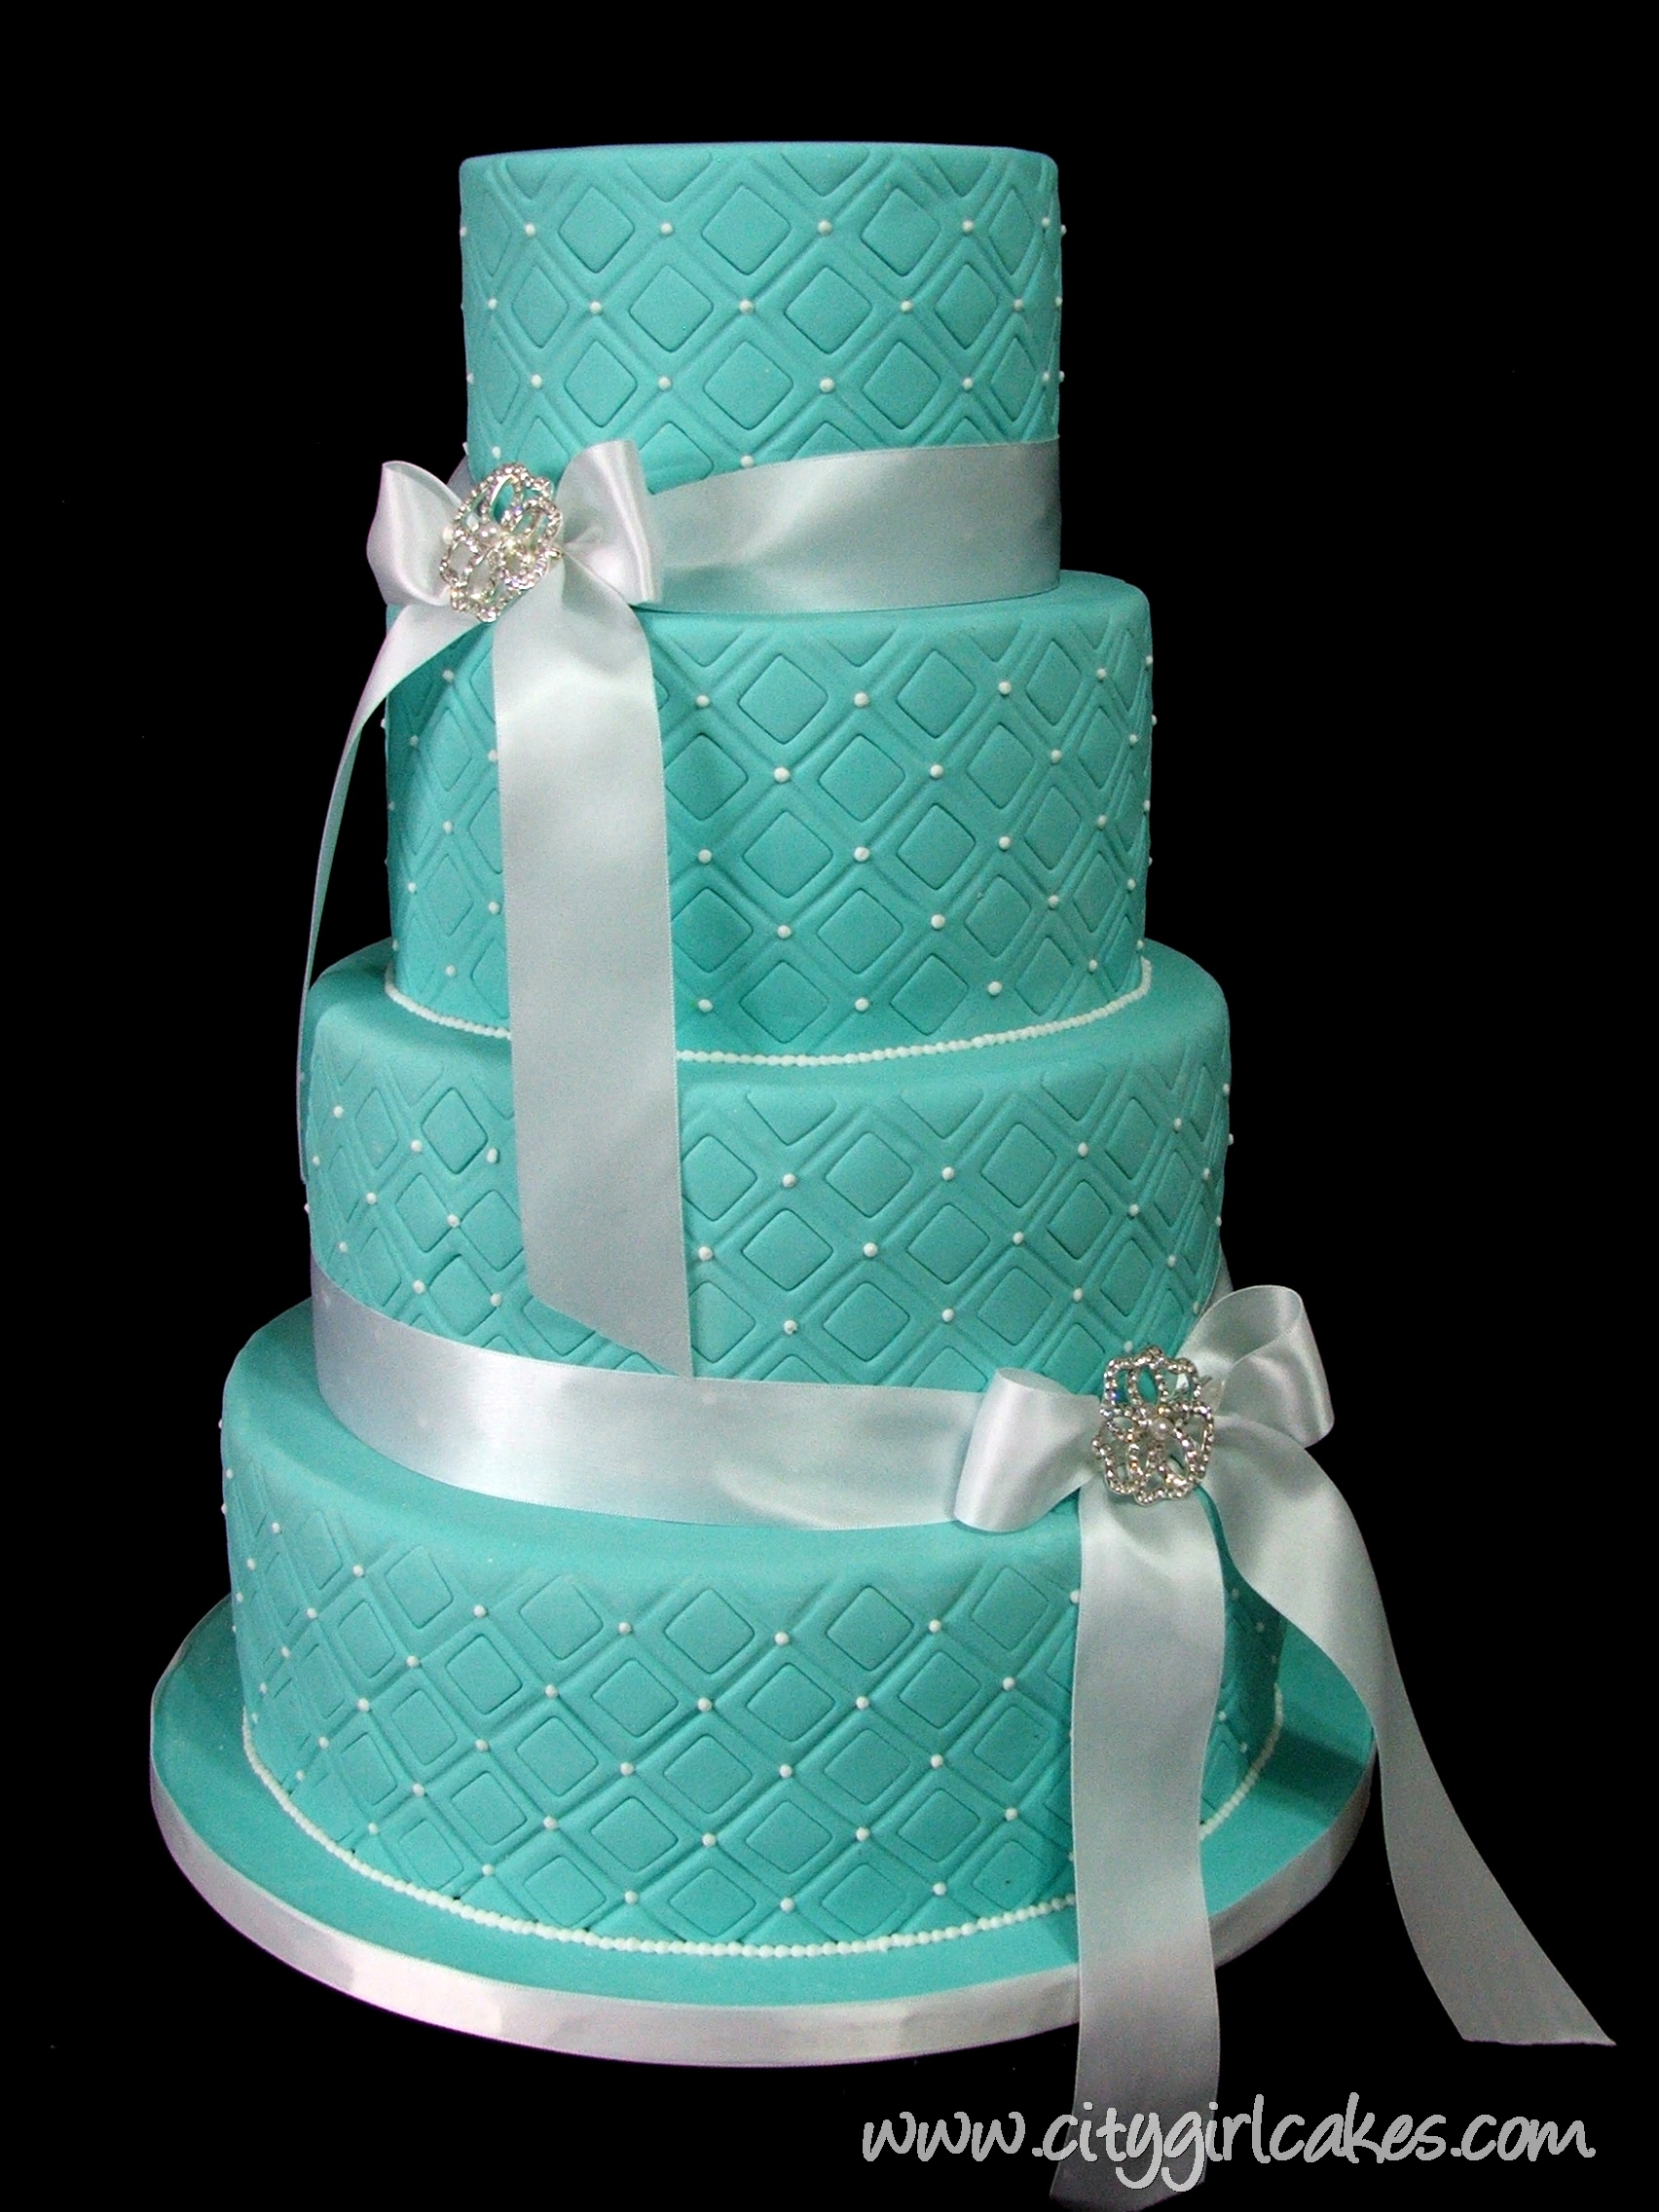 11 Tiffany Blue Themed Cakes Photo Tiffany Blue Wedding Cake